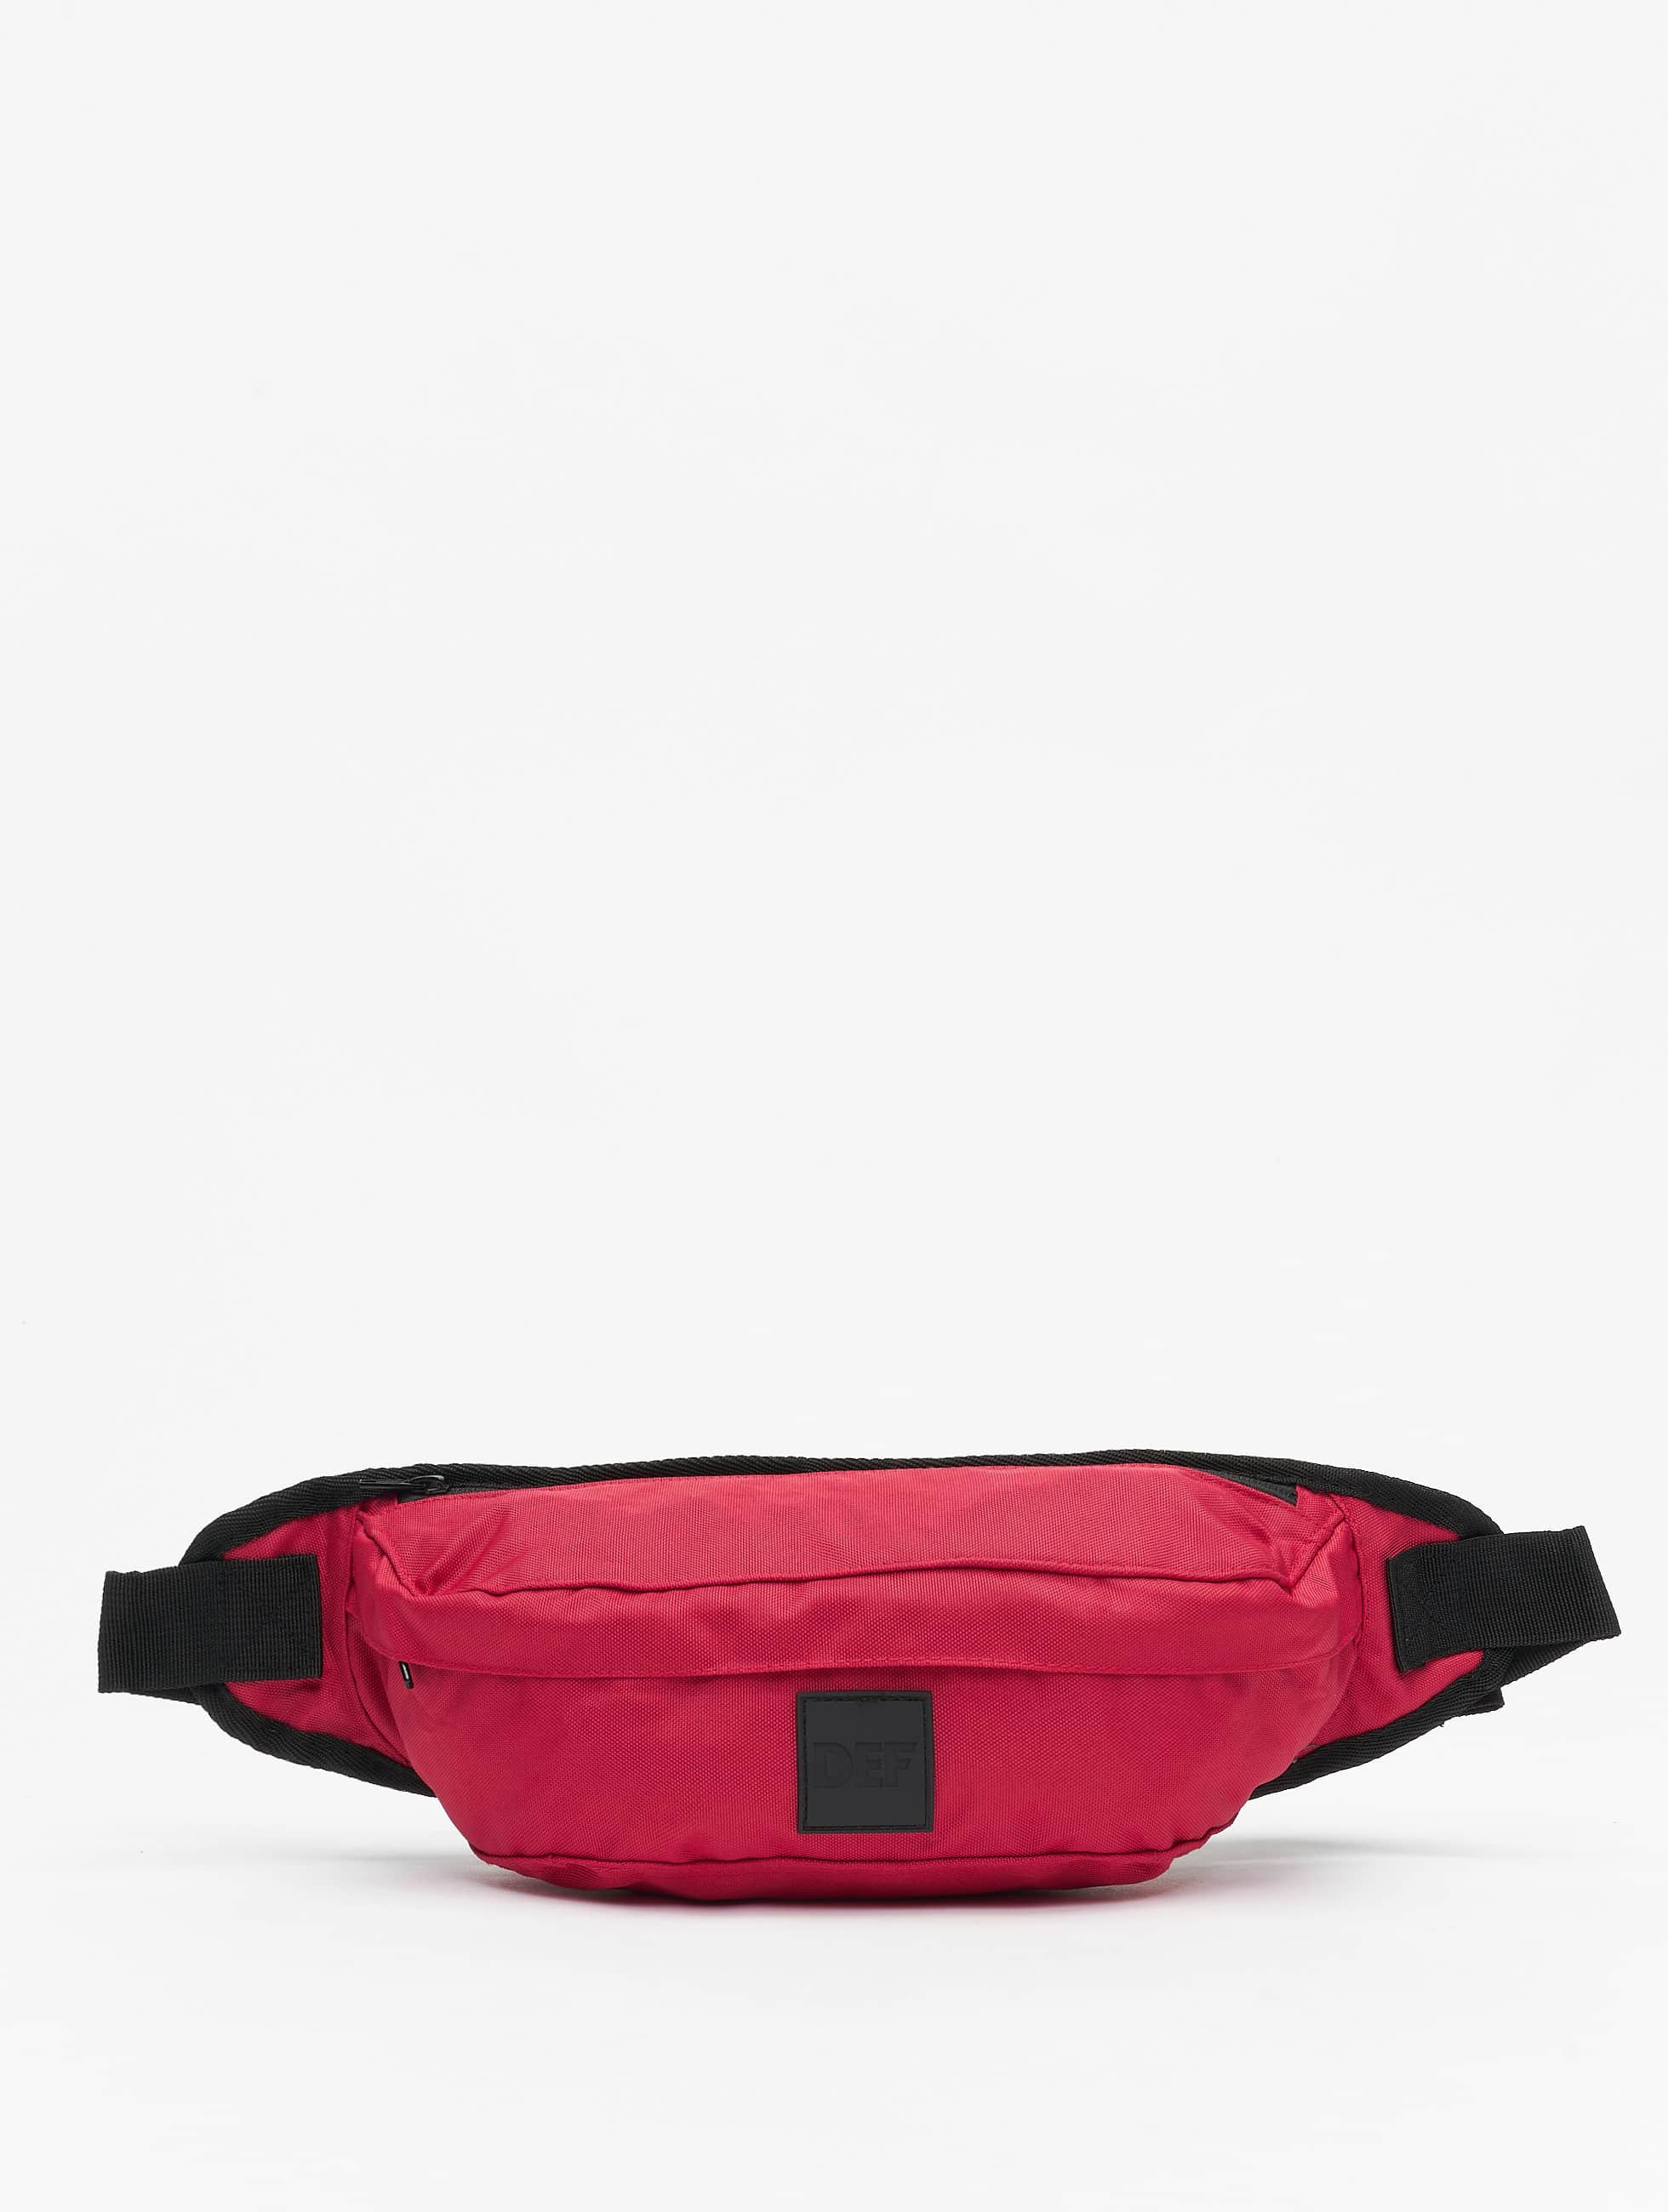 DEF / Bag Crossbody in red One Size